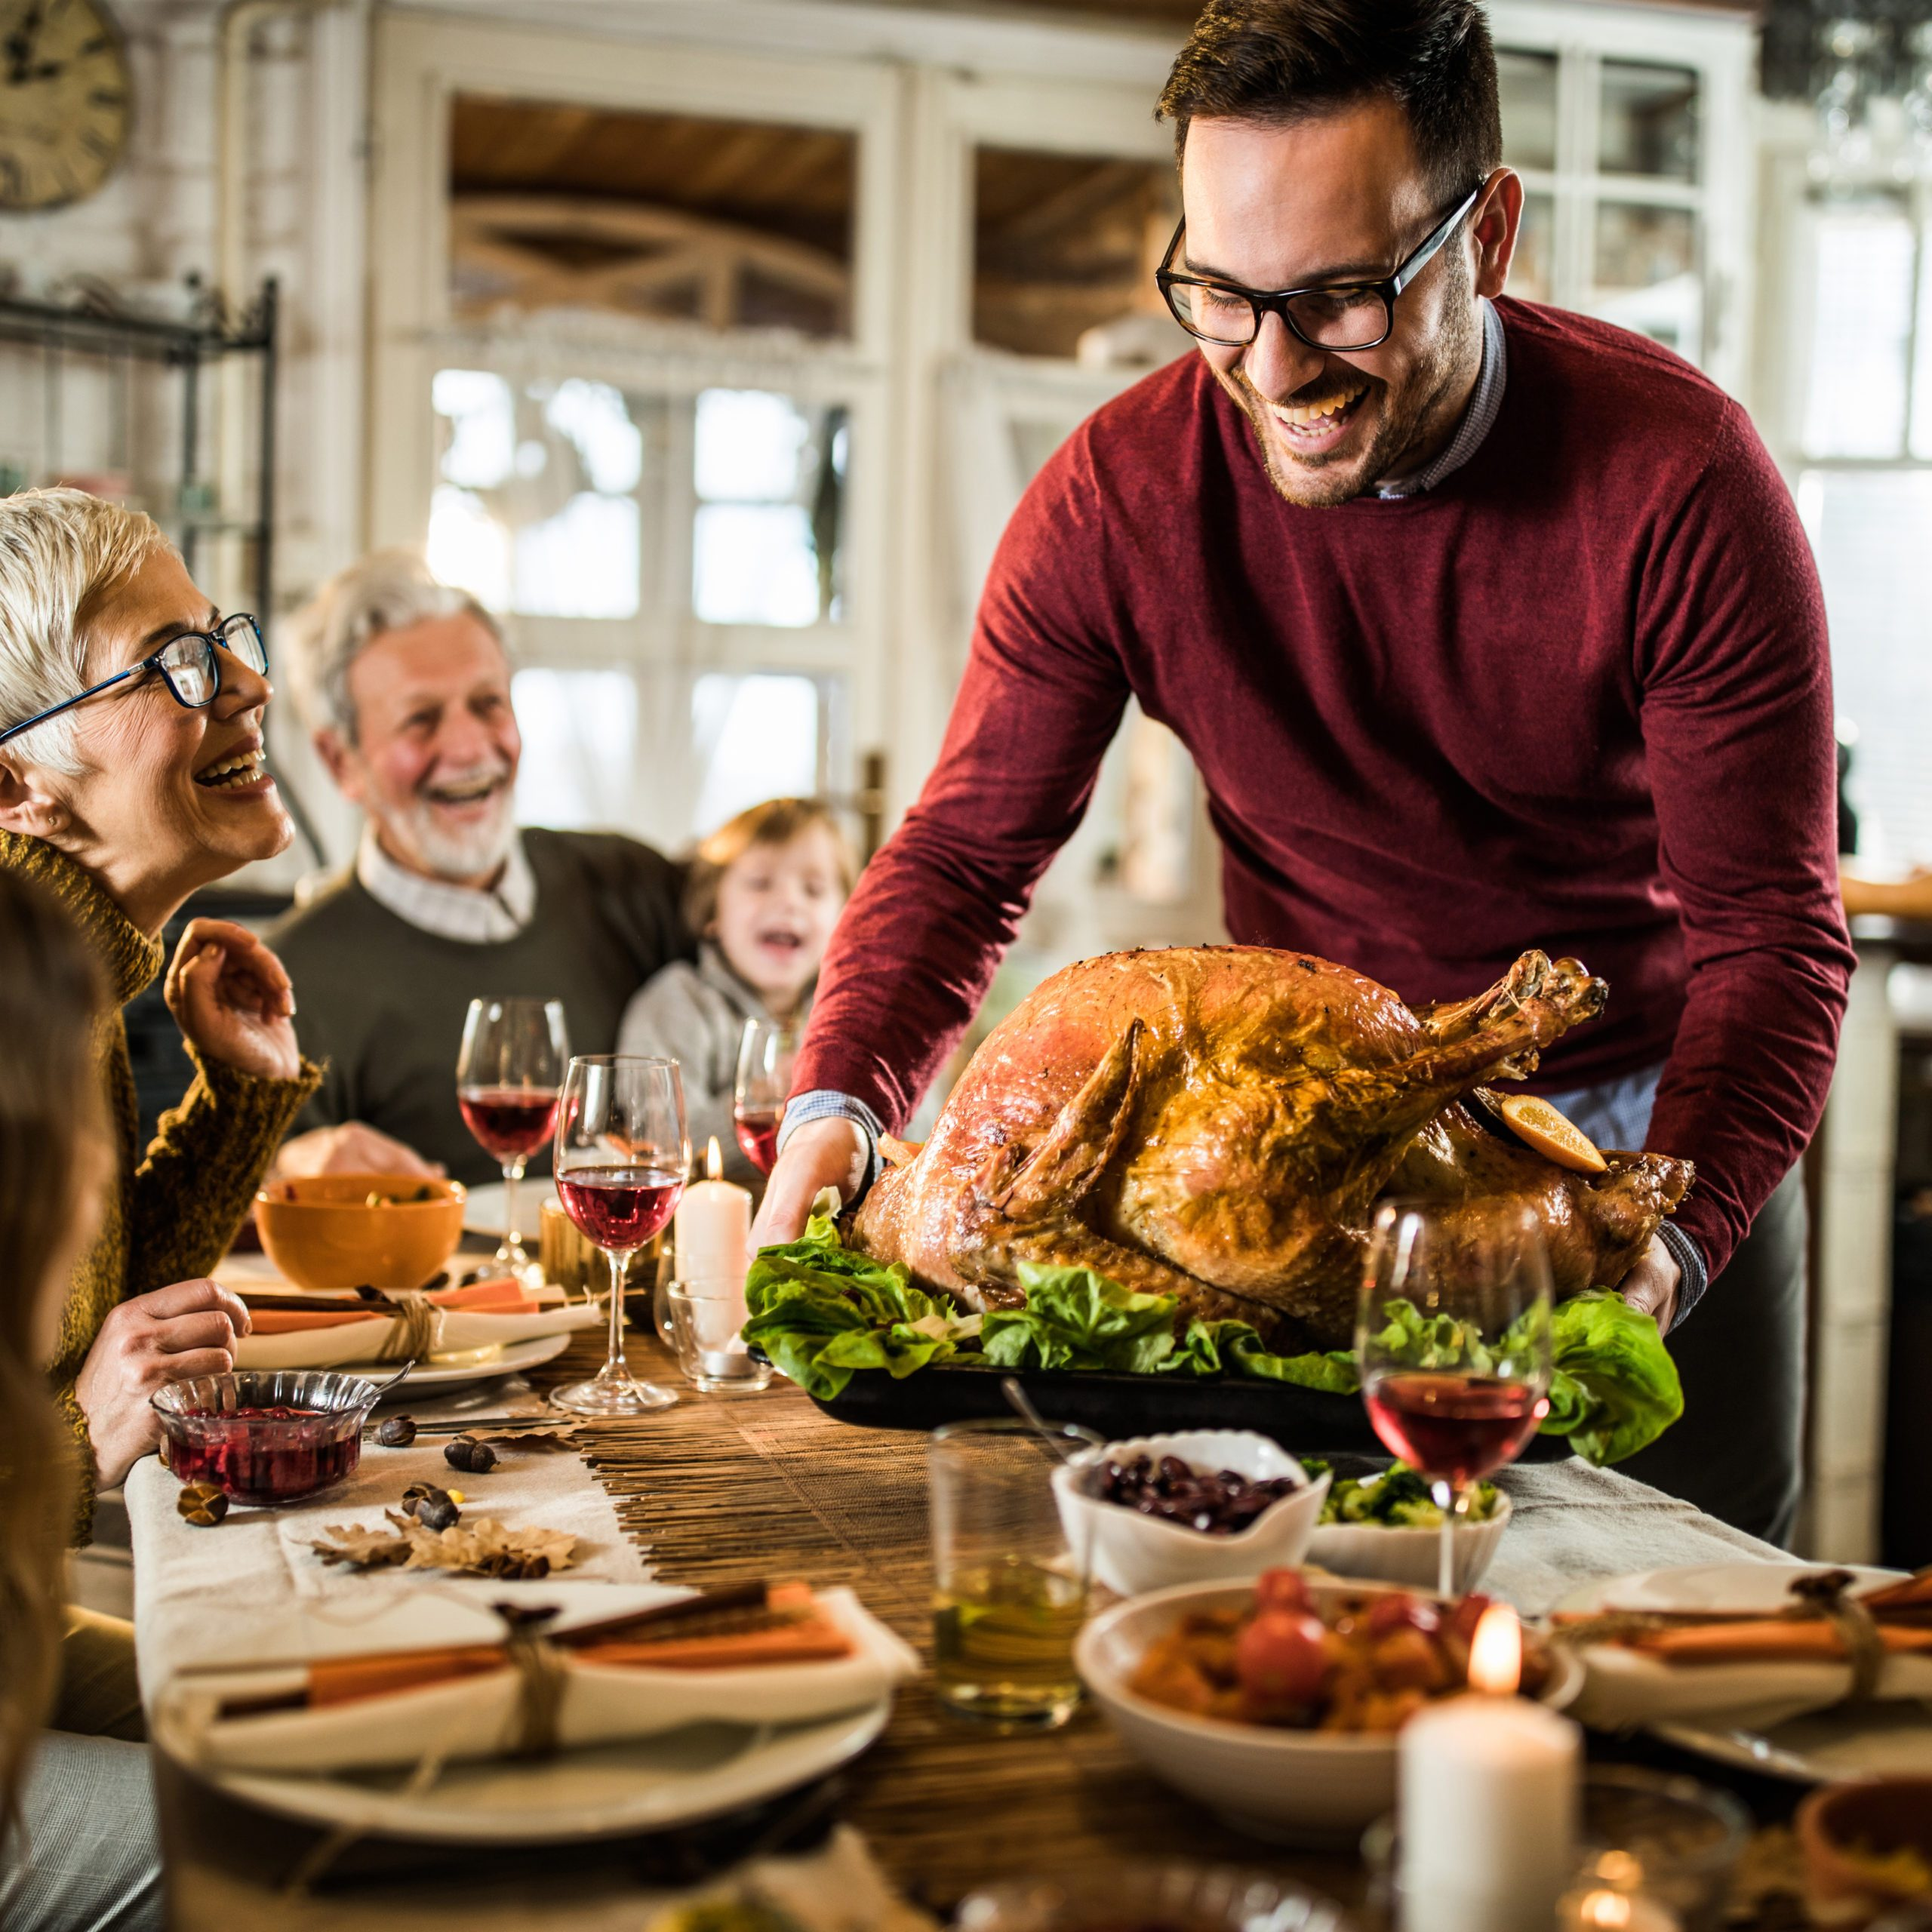 Happy man serving roasted turkey to his family during Thanksgiving dinner at dining table.